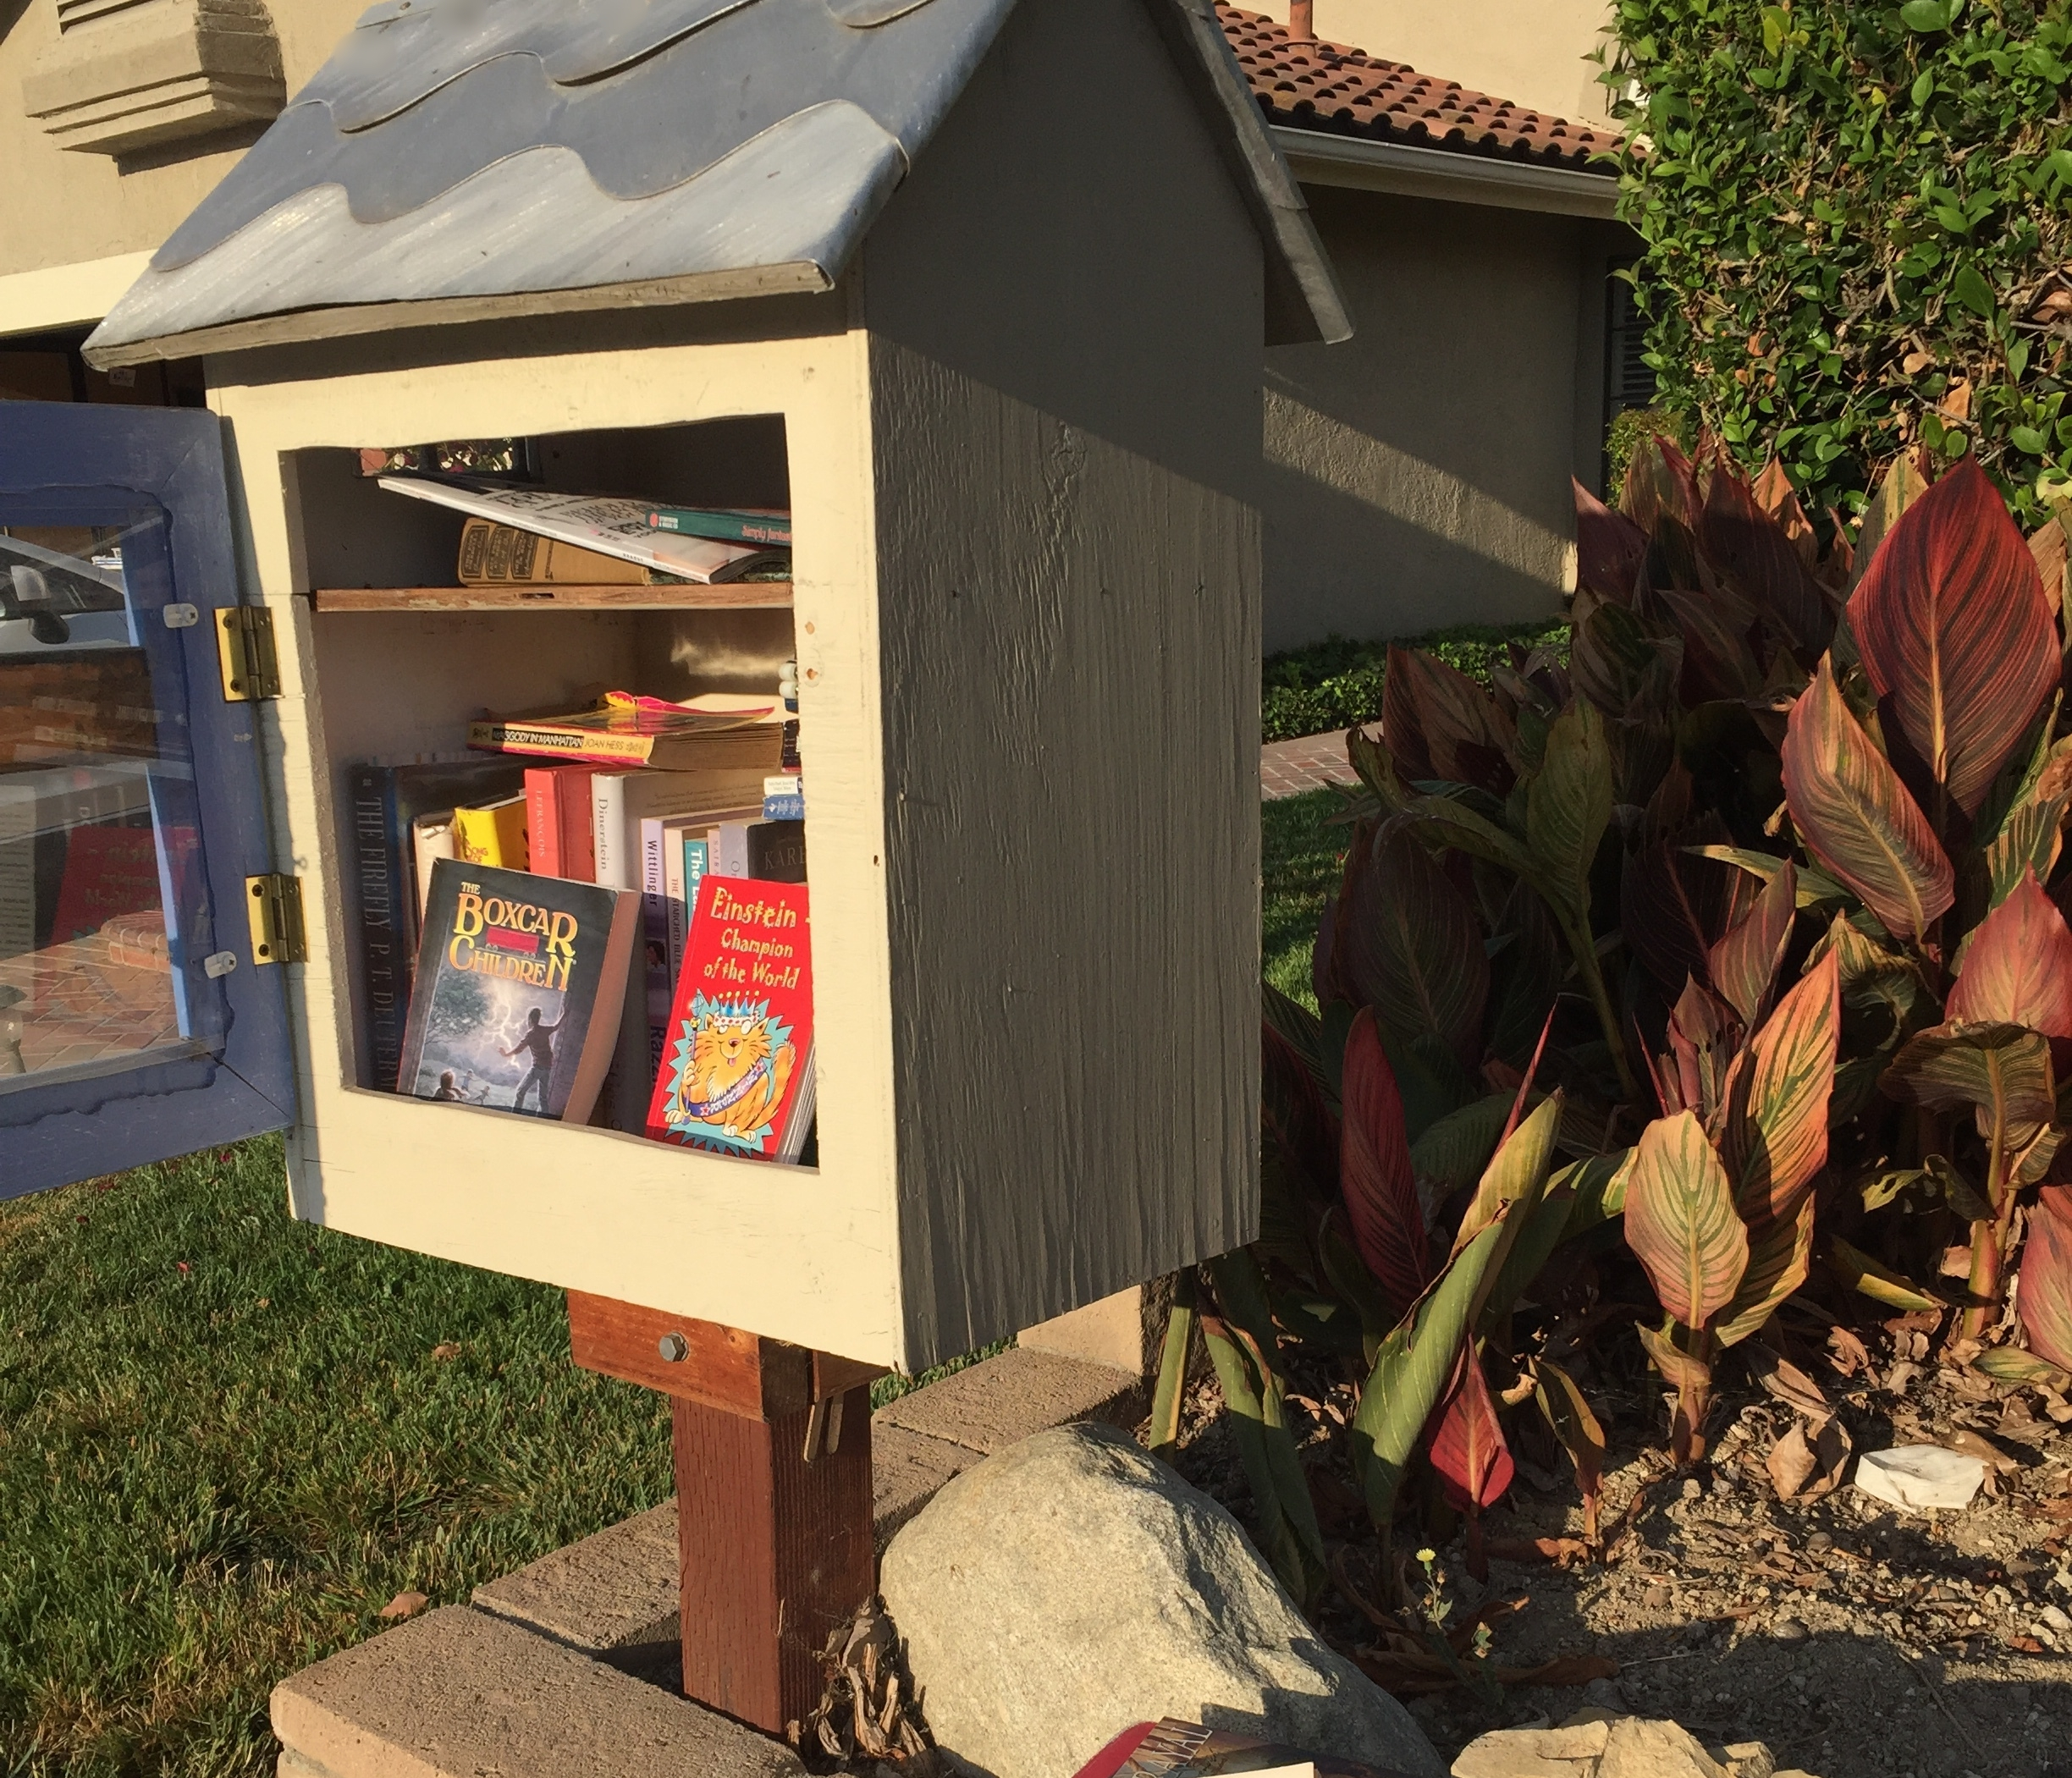 I Had My Own Library - I'm a junkie for libraries, especially the Little Free kind. You've seen these around town (no matter where you live). I had one in my yard in California for years, and now living in Minnesota I just enjoy the Little Free Libraries I see all over the metro area. Click below to check out some of what I've been reading.